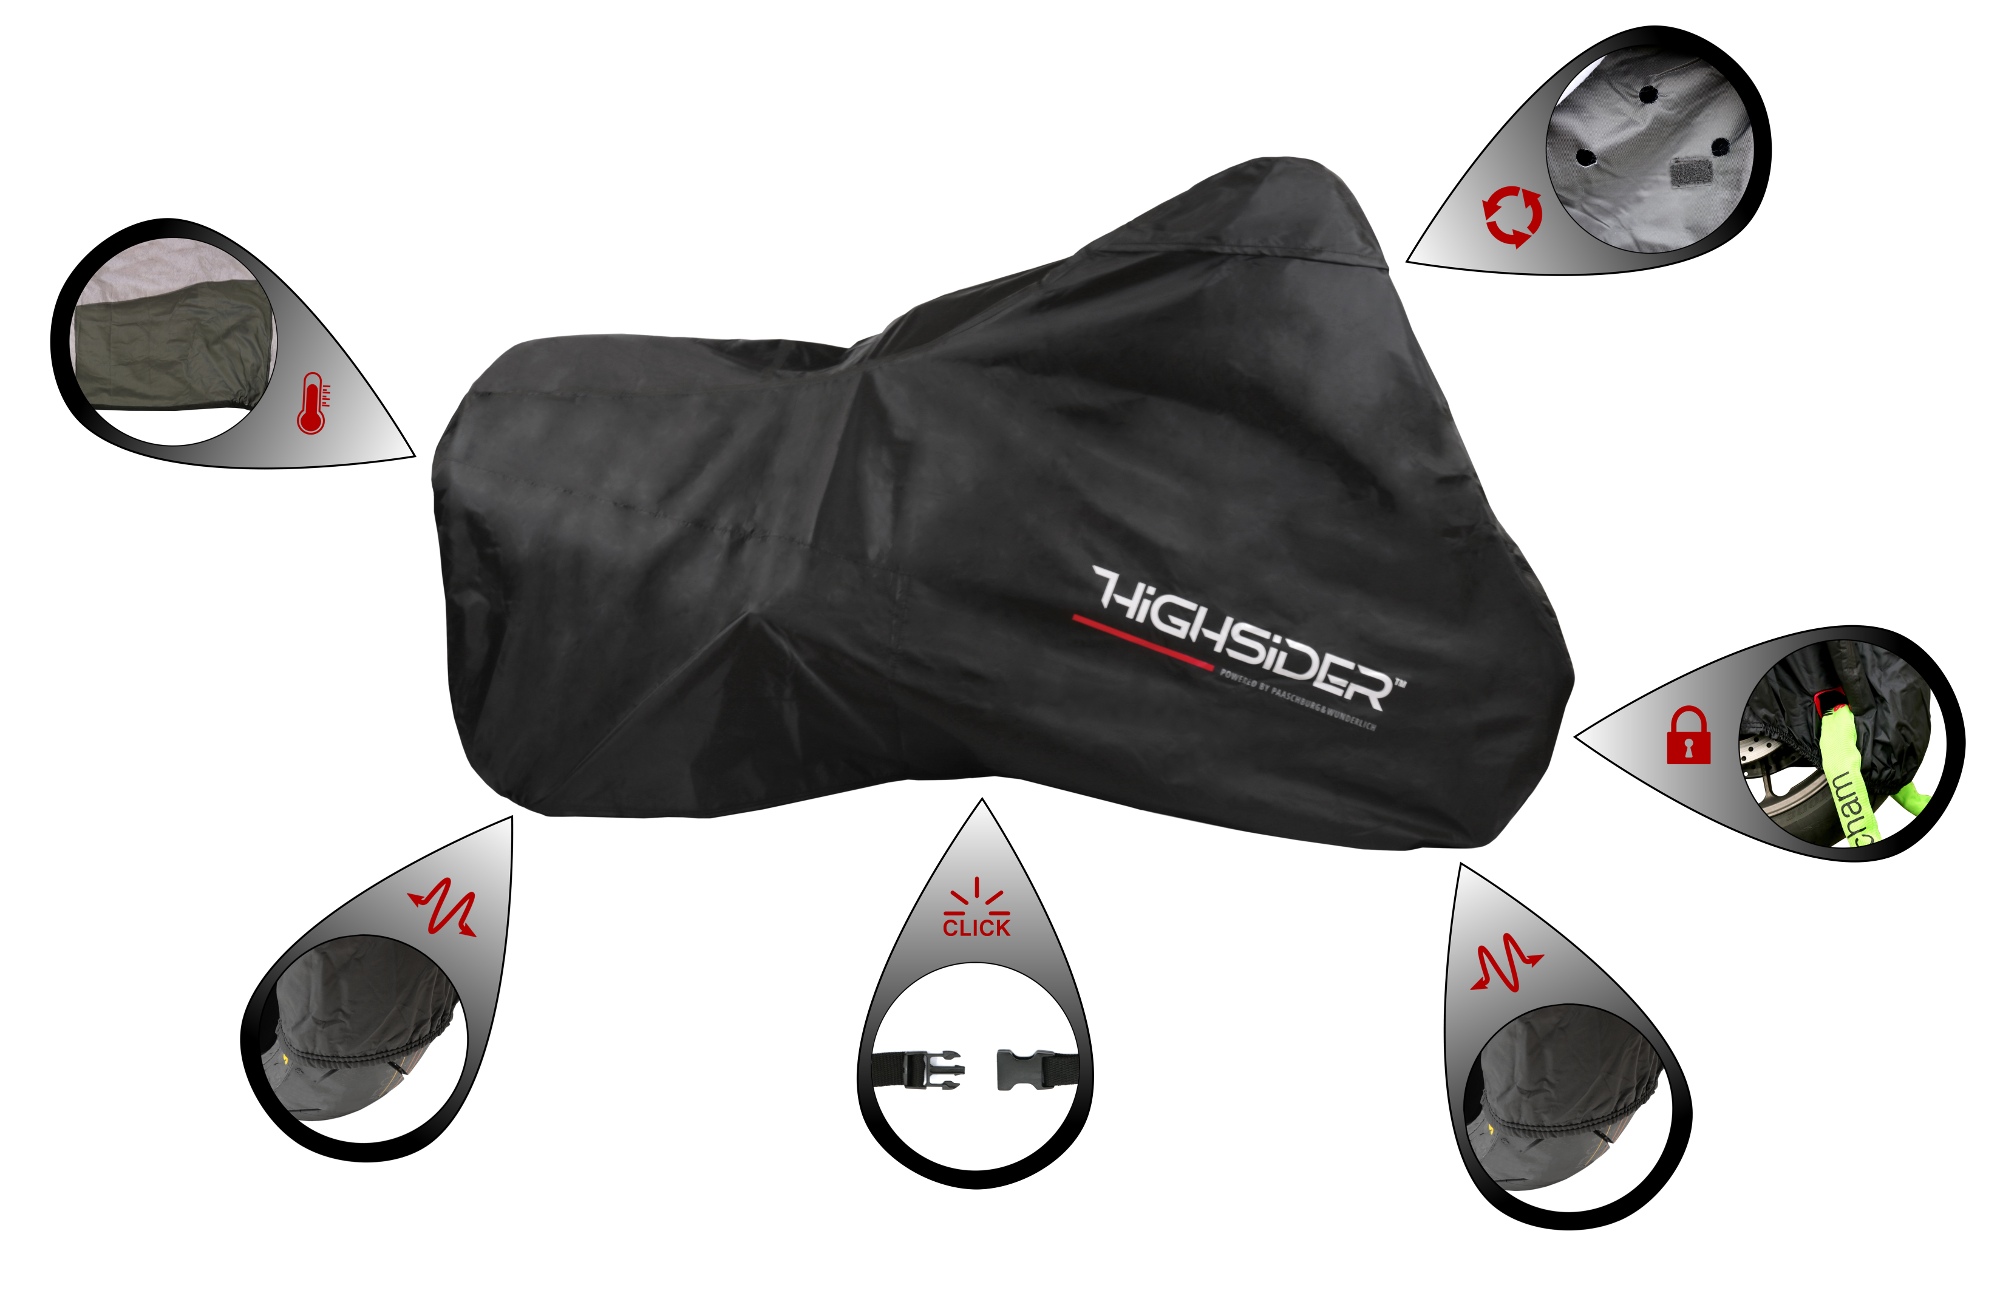 Highsider High Quality Motorcycle Cover